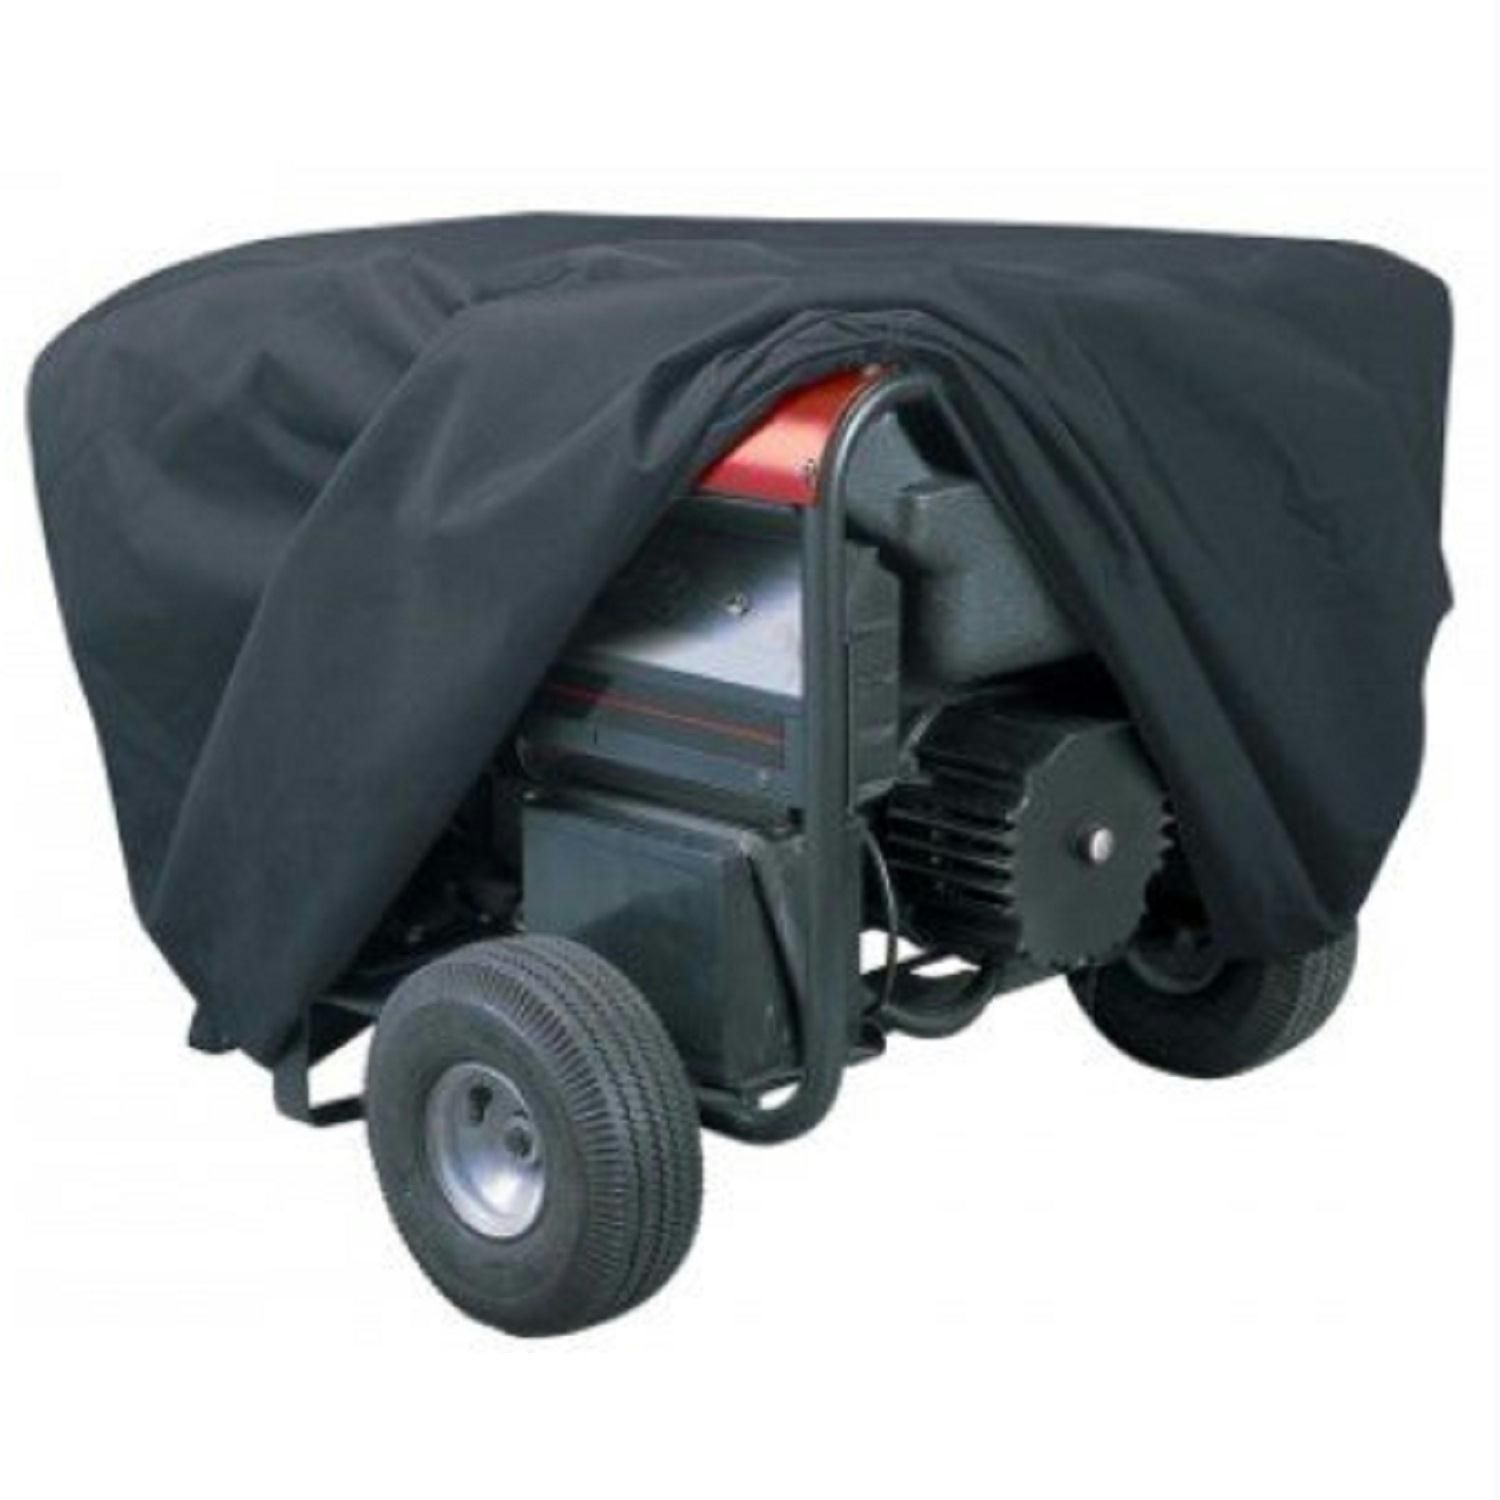 The Generator Cover by Classic Accessories keeps dirt